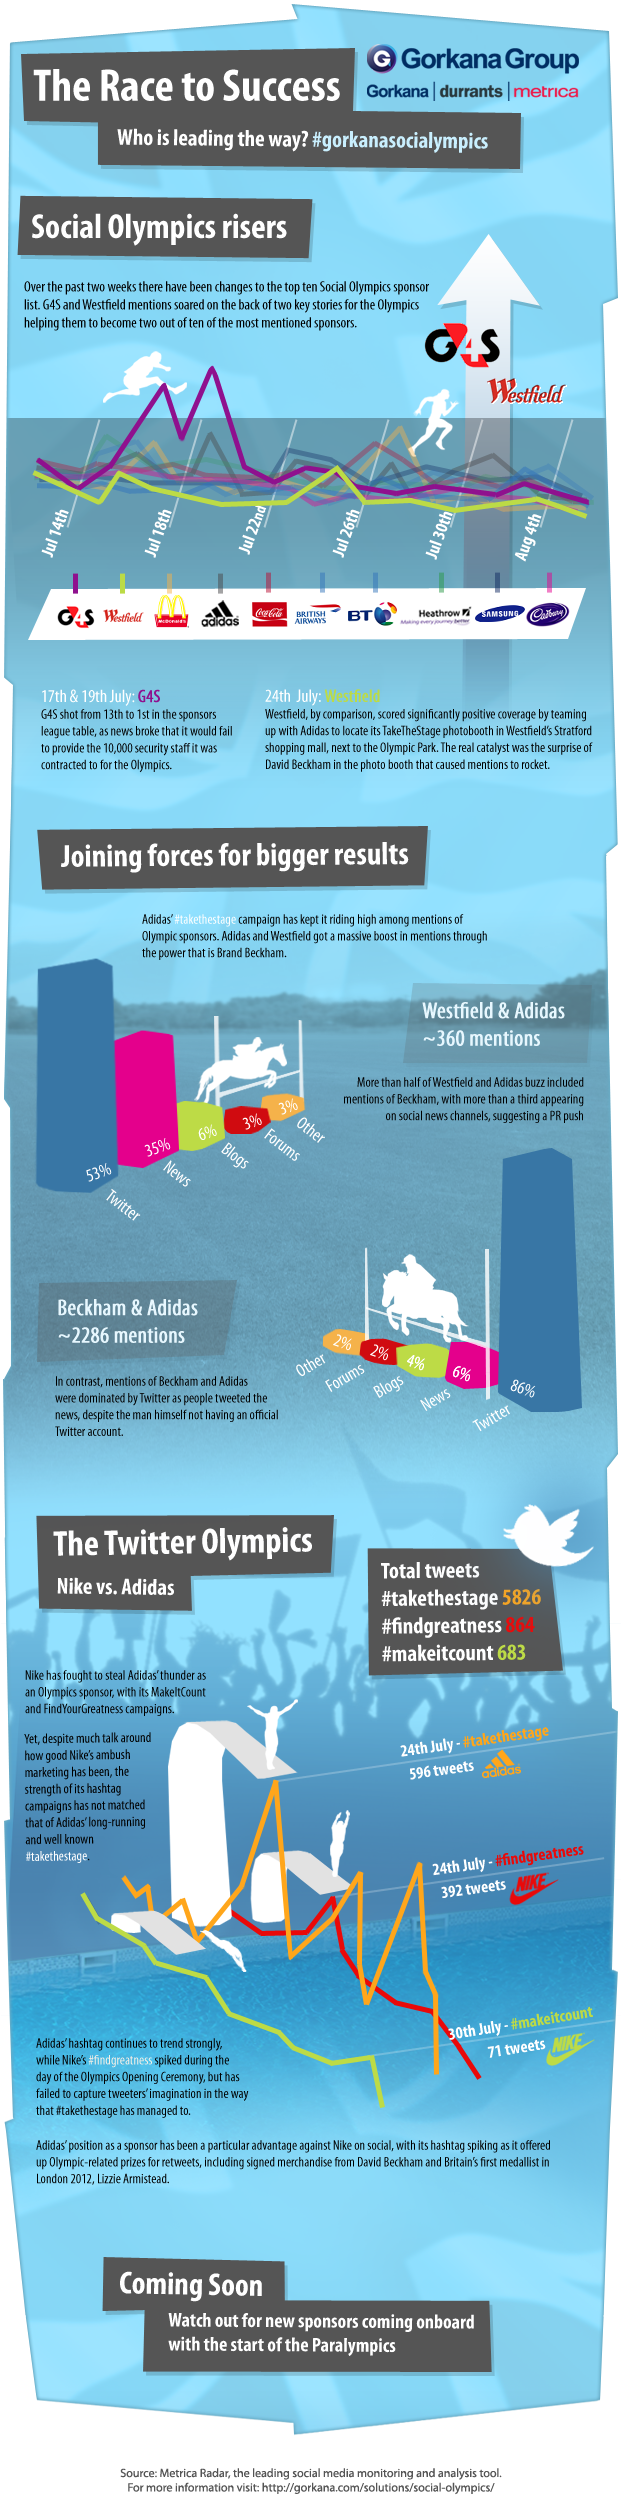 Who are the Social Olympics risers?